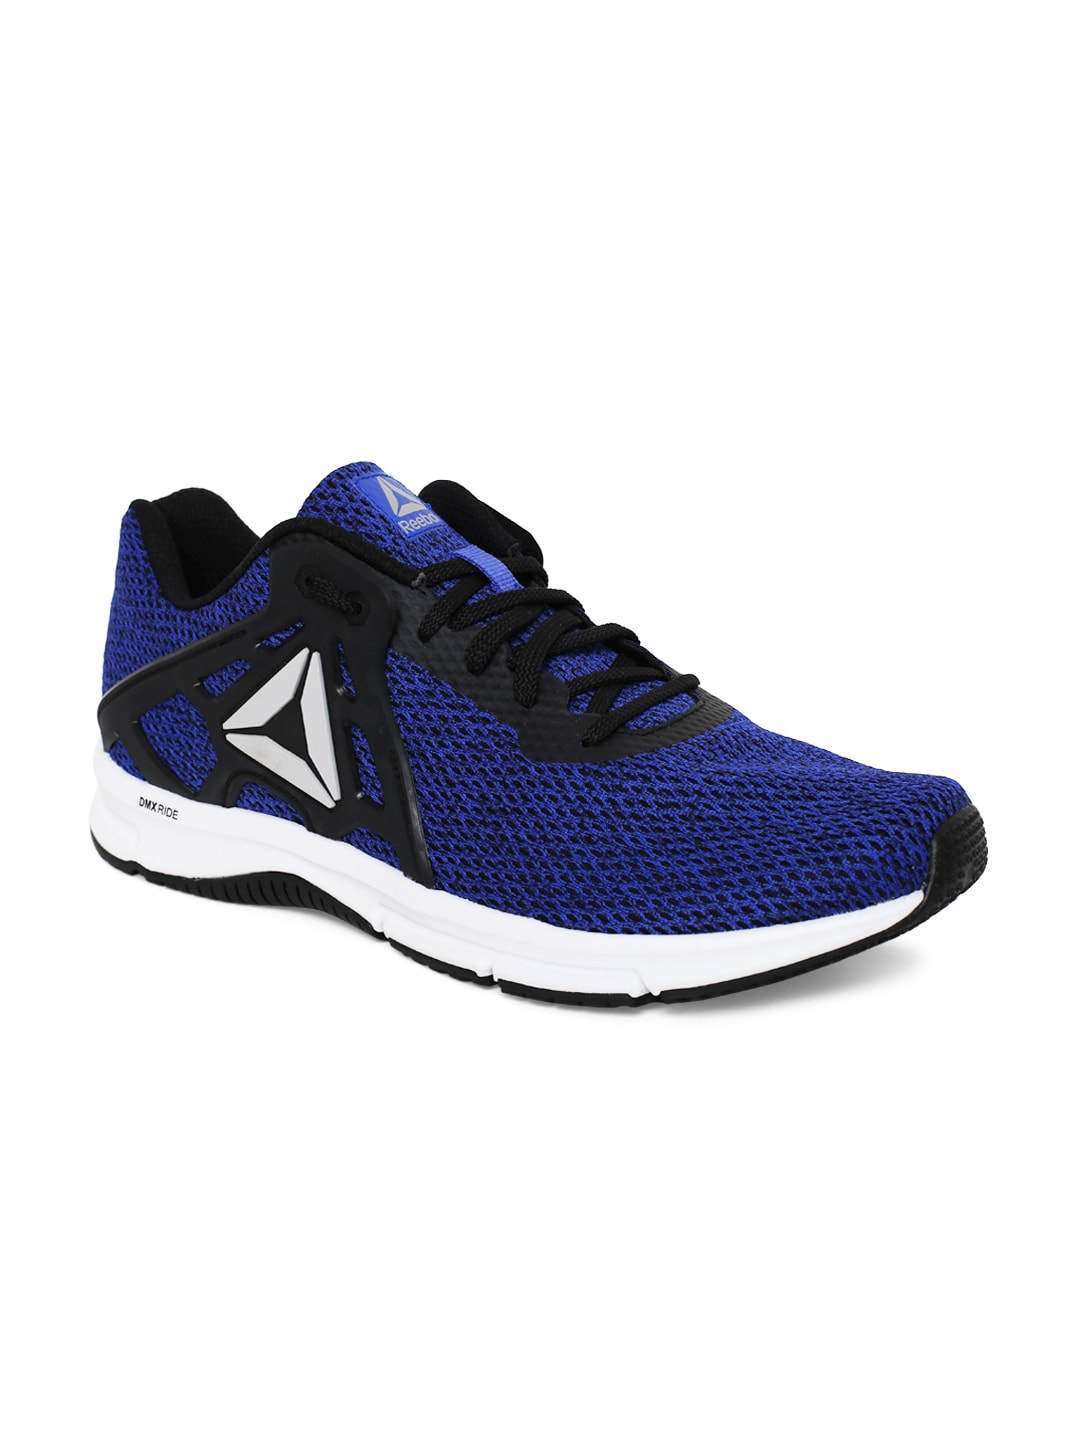 c9f281d3c2e5 Buy Reebok Men Blue Jet Dashride 6.0 Running Shoes - Sports Shoes ...